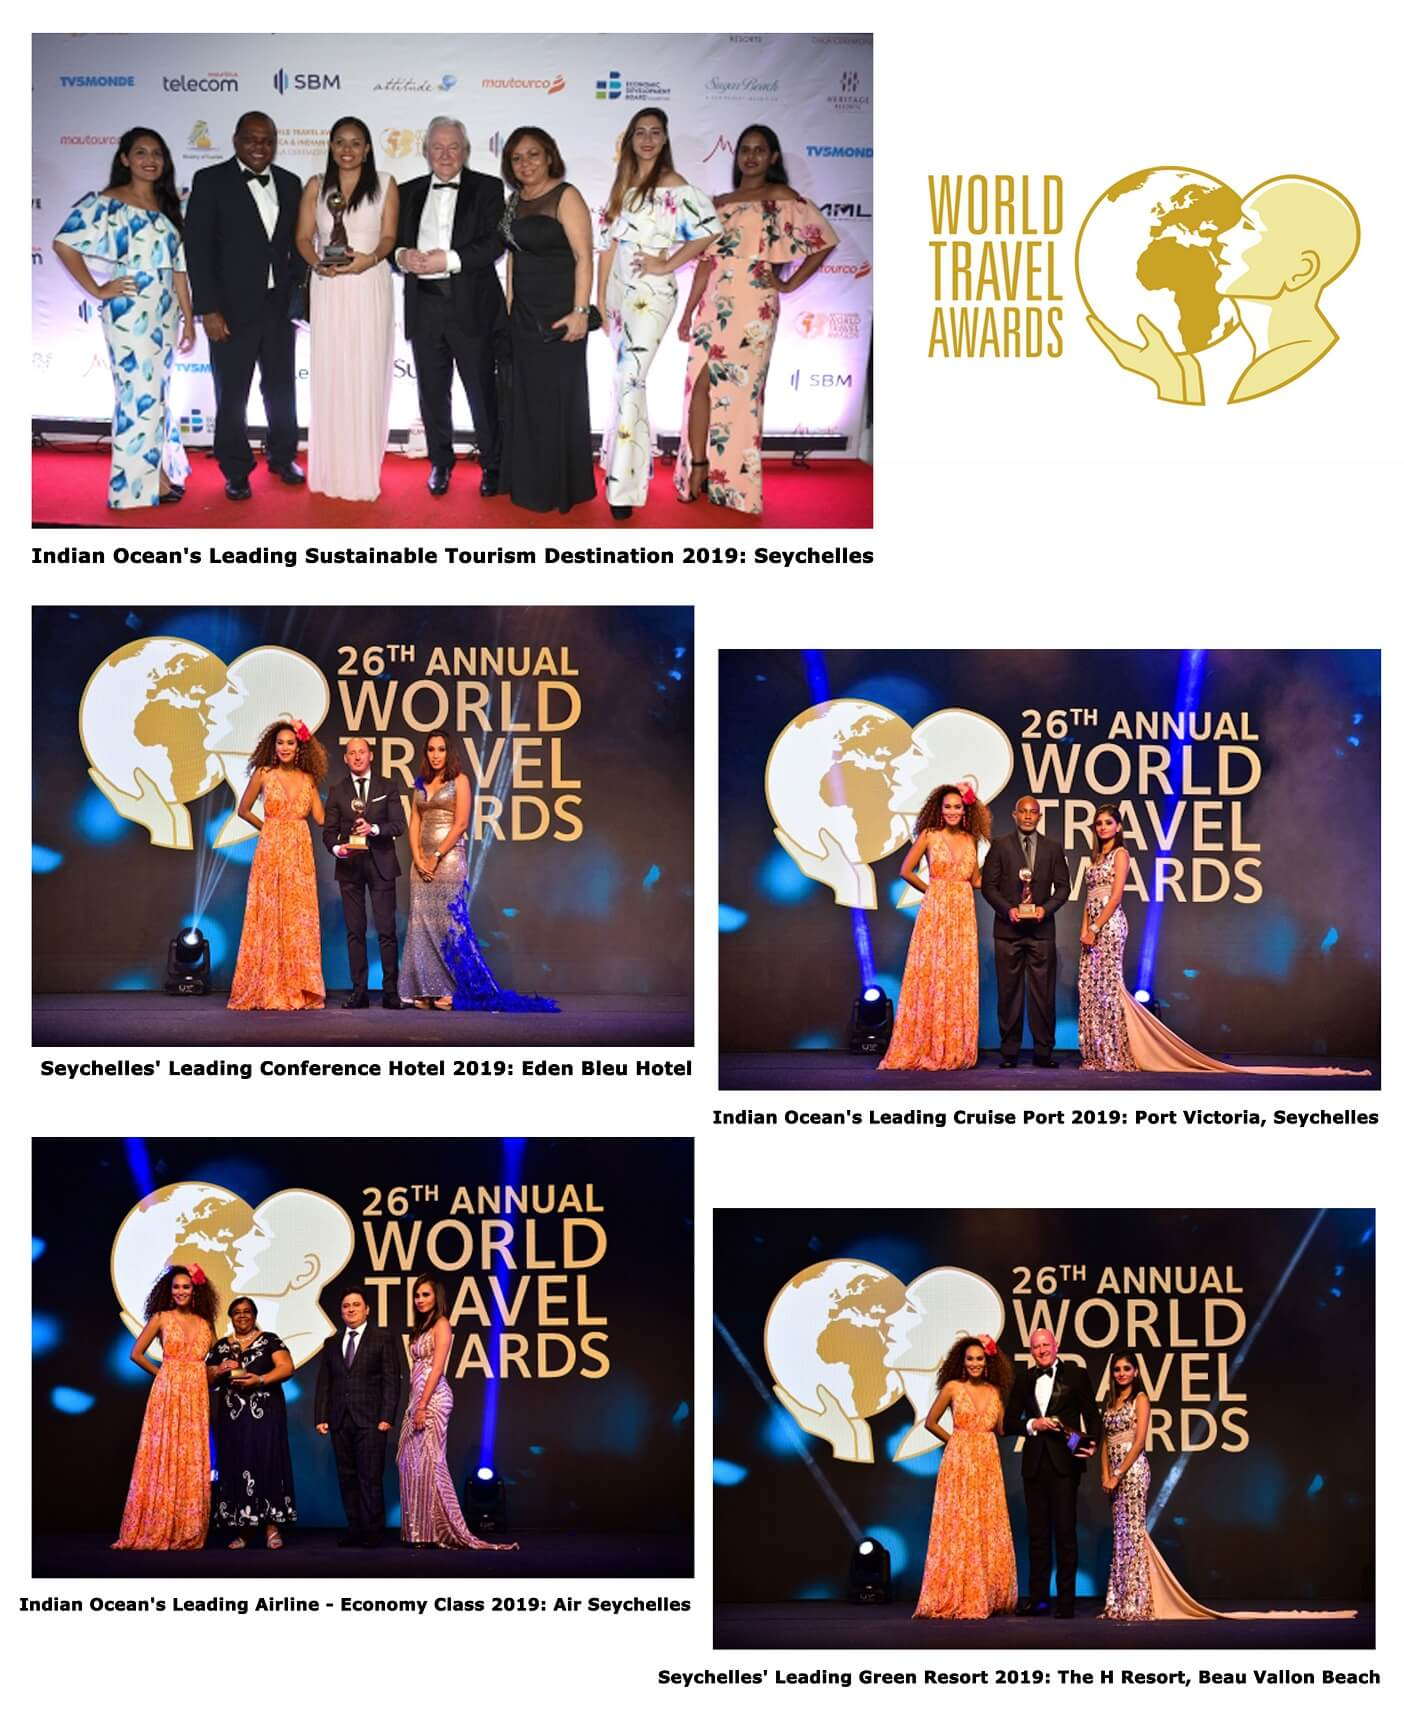 Seychelles' Best recognized at World Travel Awards in Mauritius